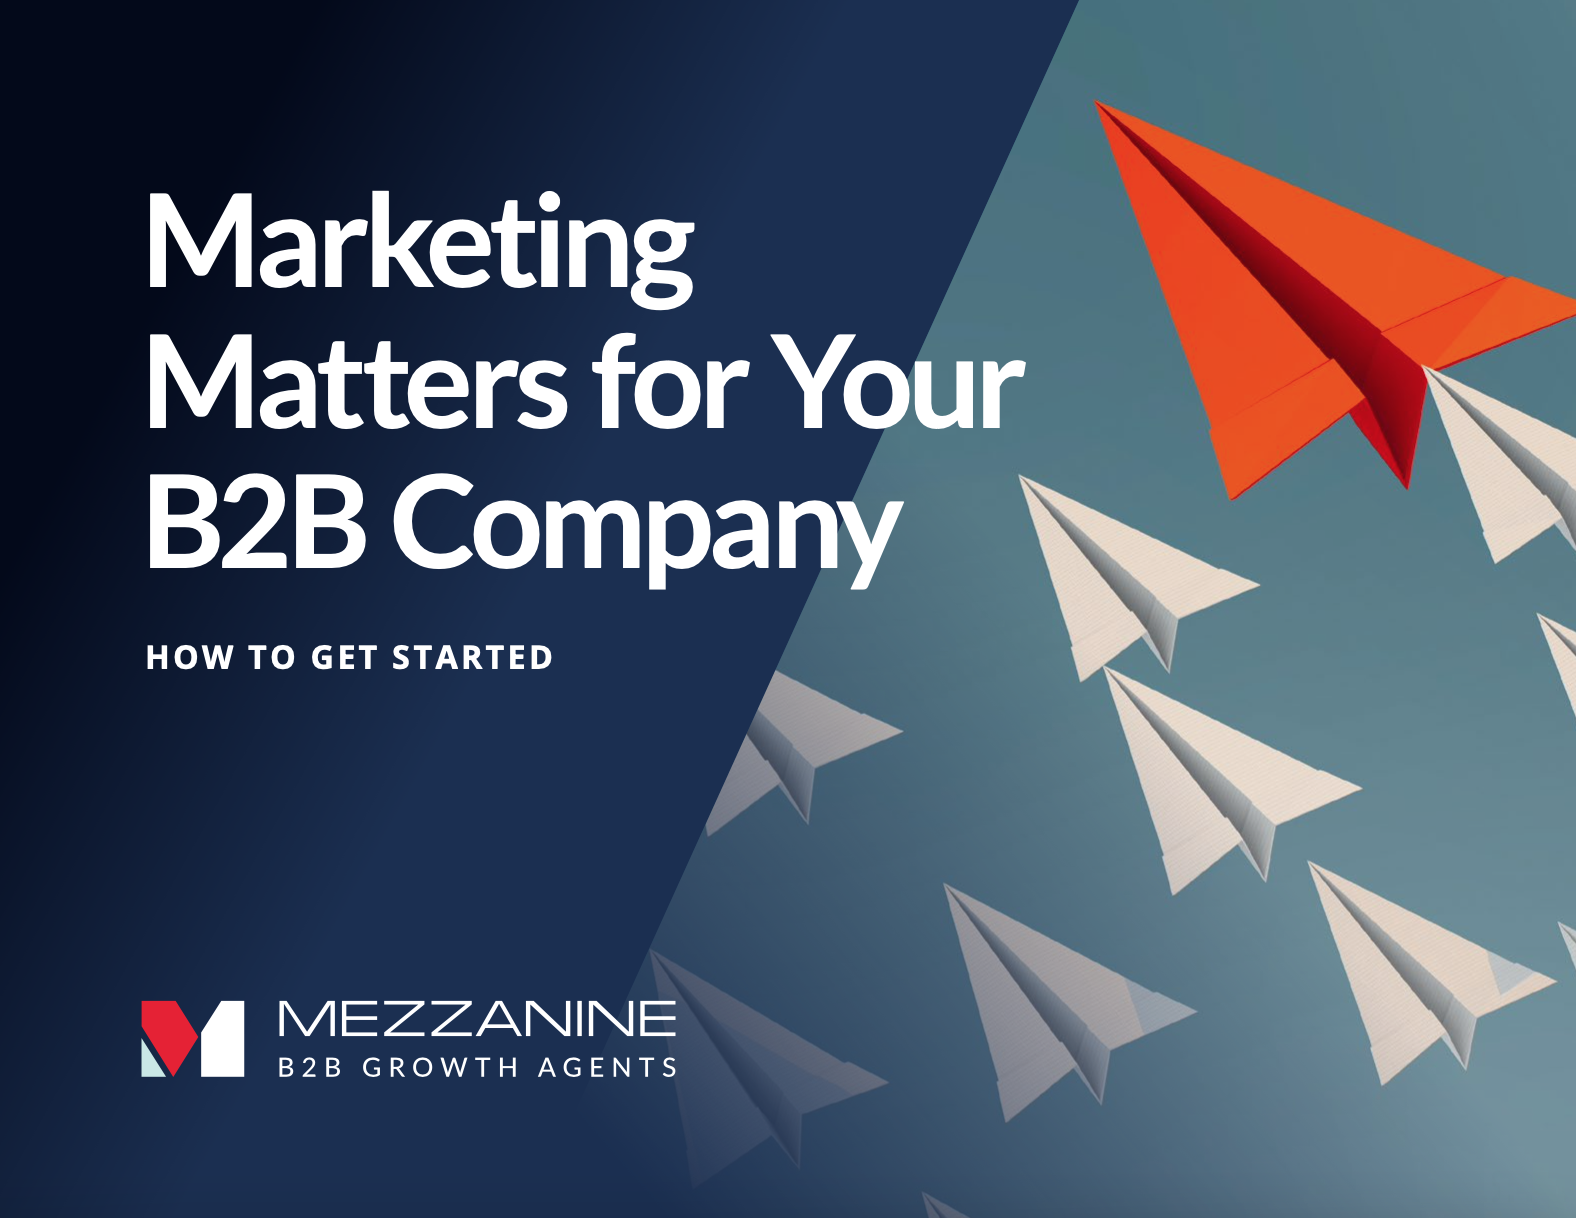 Marketing Matters for Your B2B Company: How To Get Started